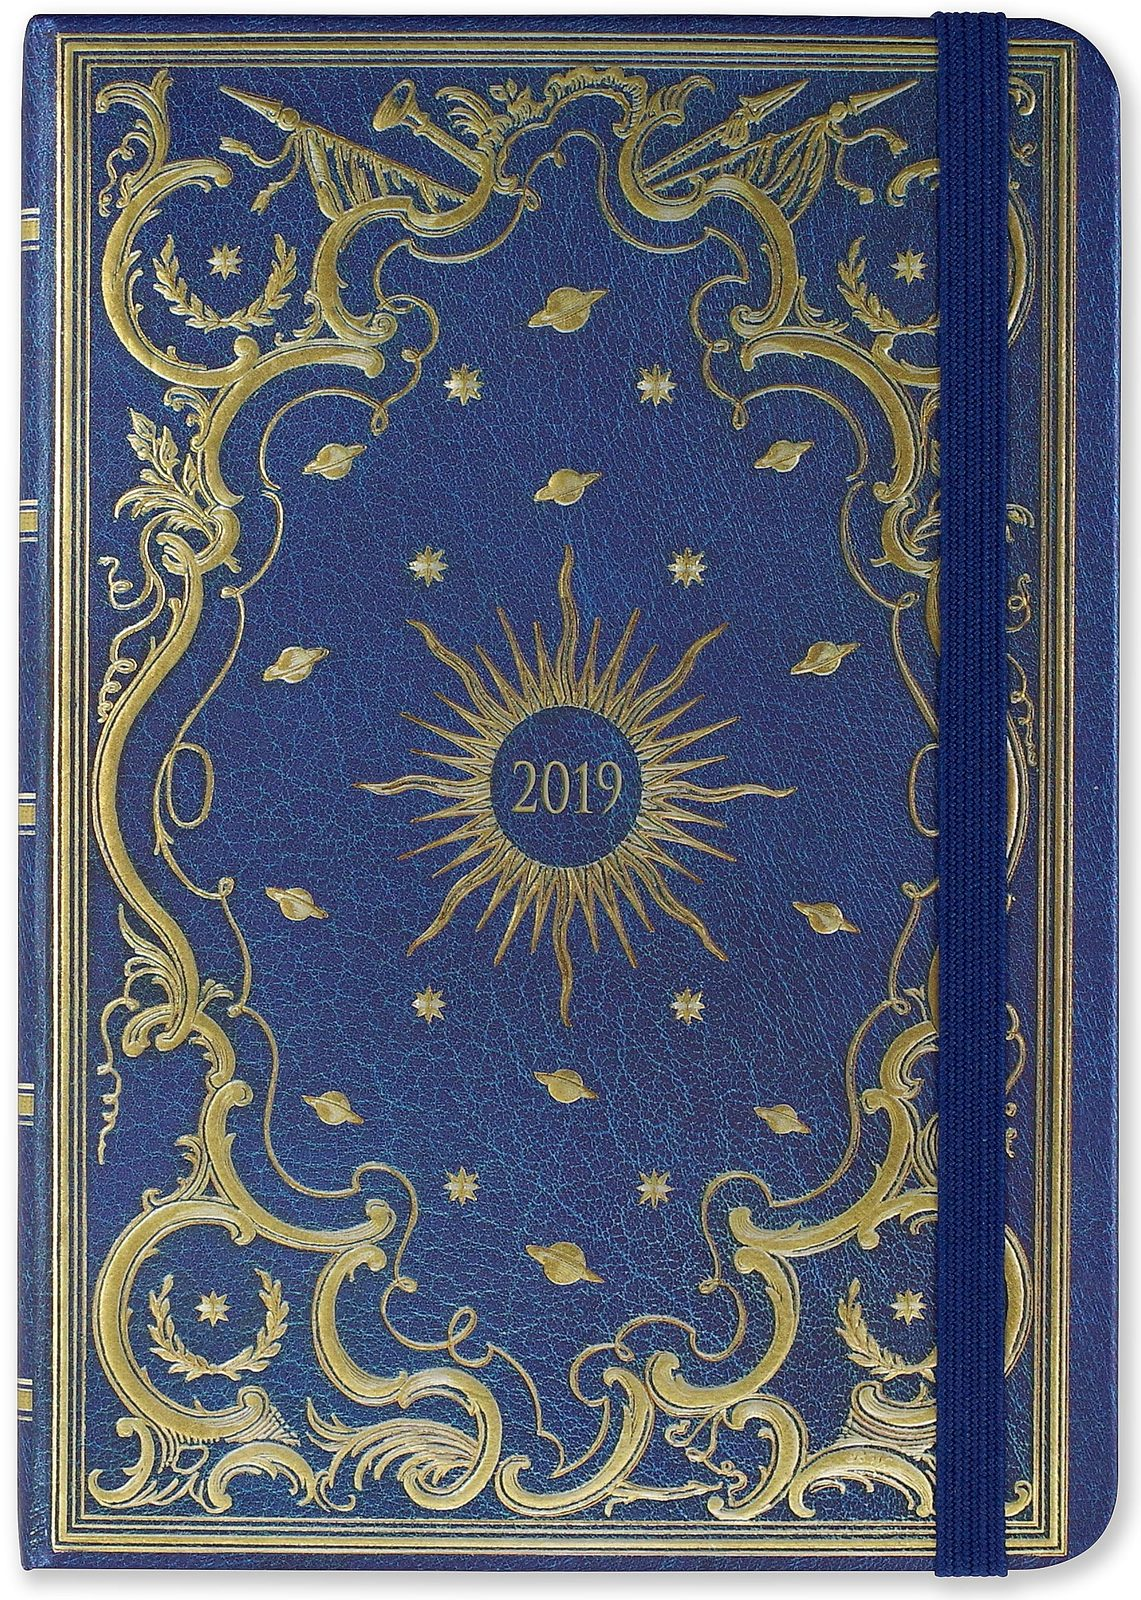 Peter Pauper: Celestial 16 Month 2019 Compact Diary image